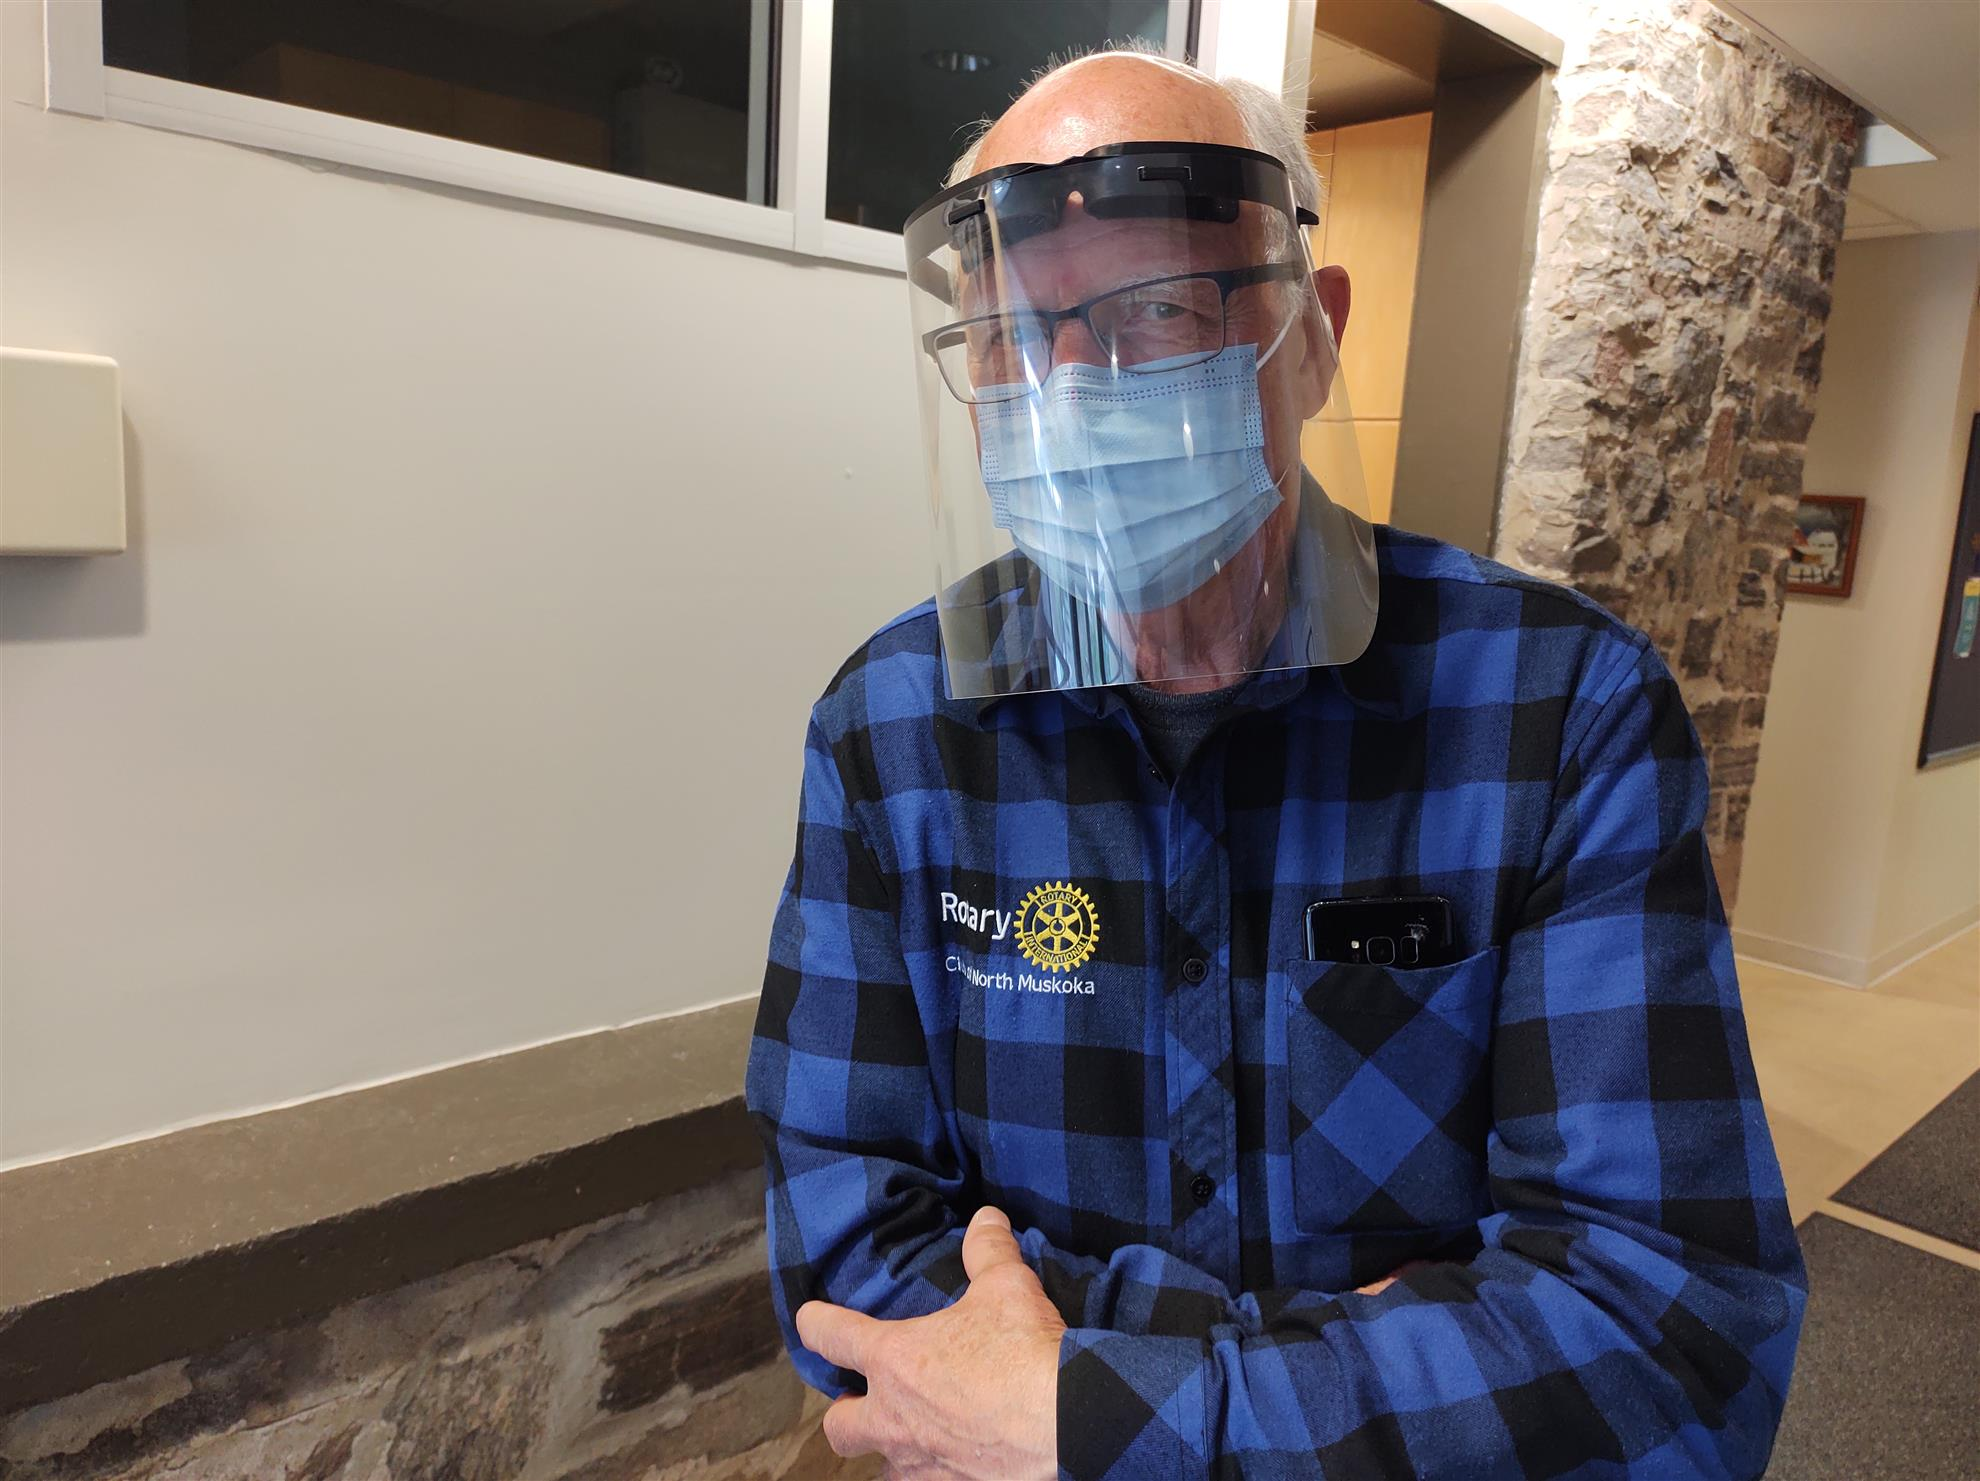 Jim wearing a face mask and face shield